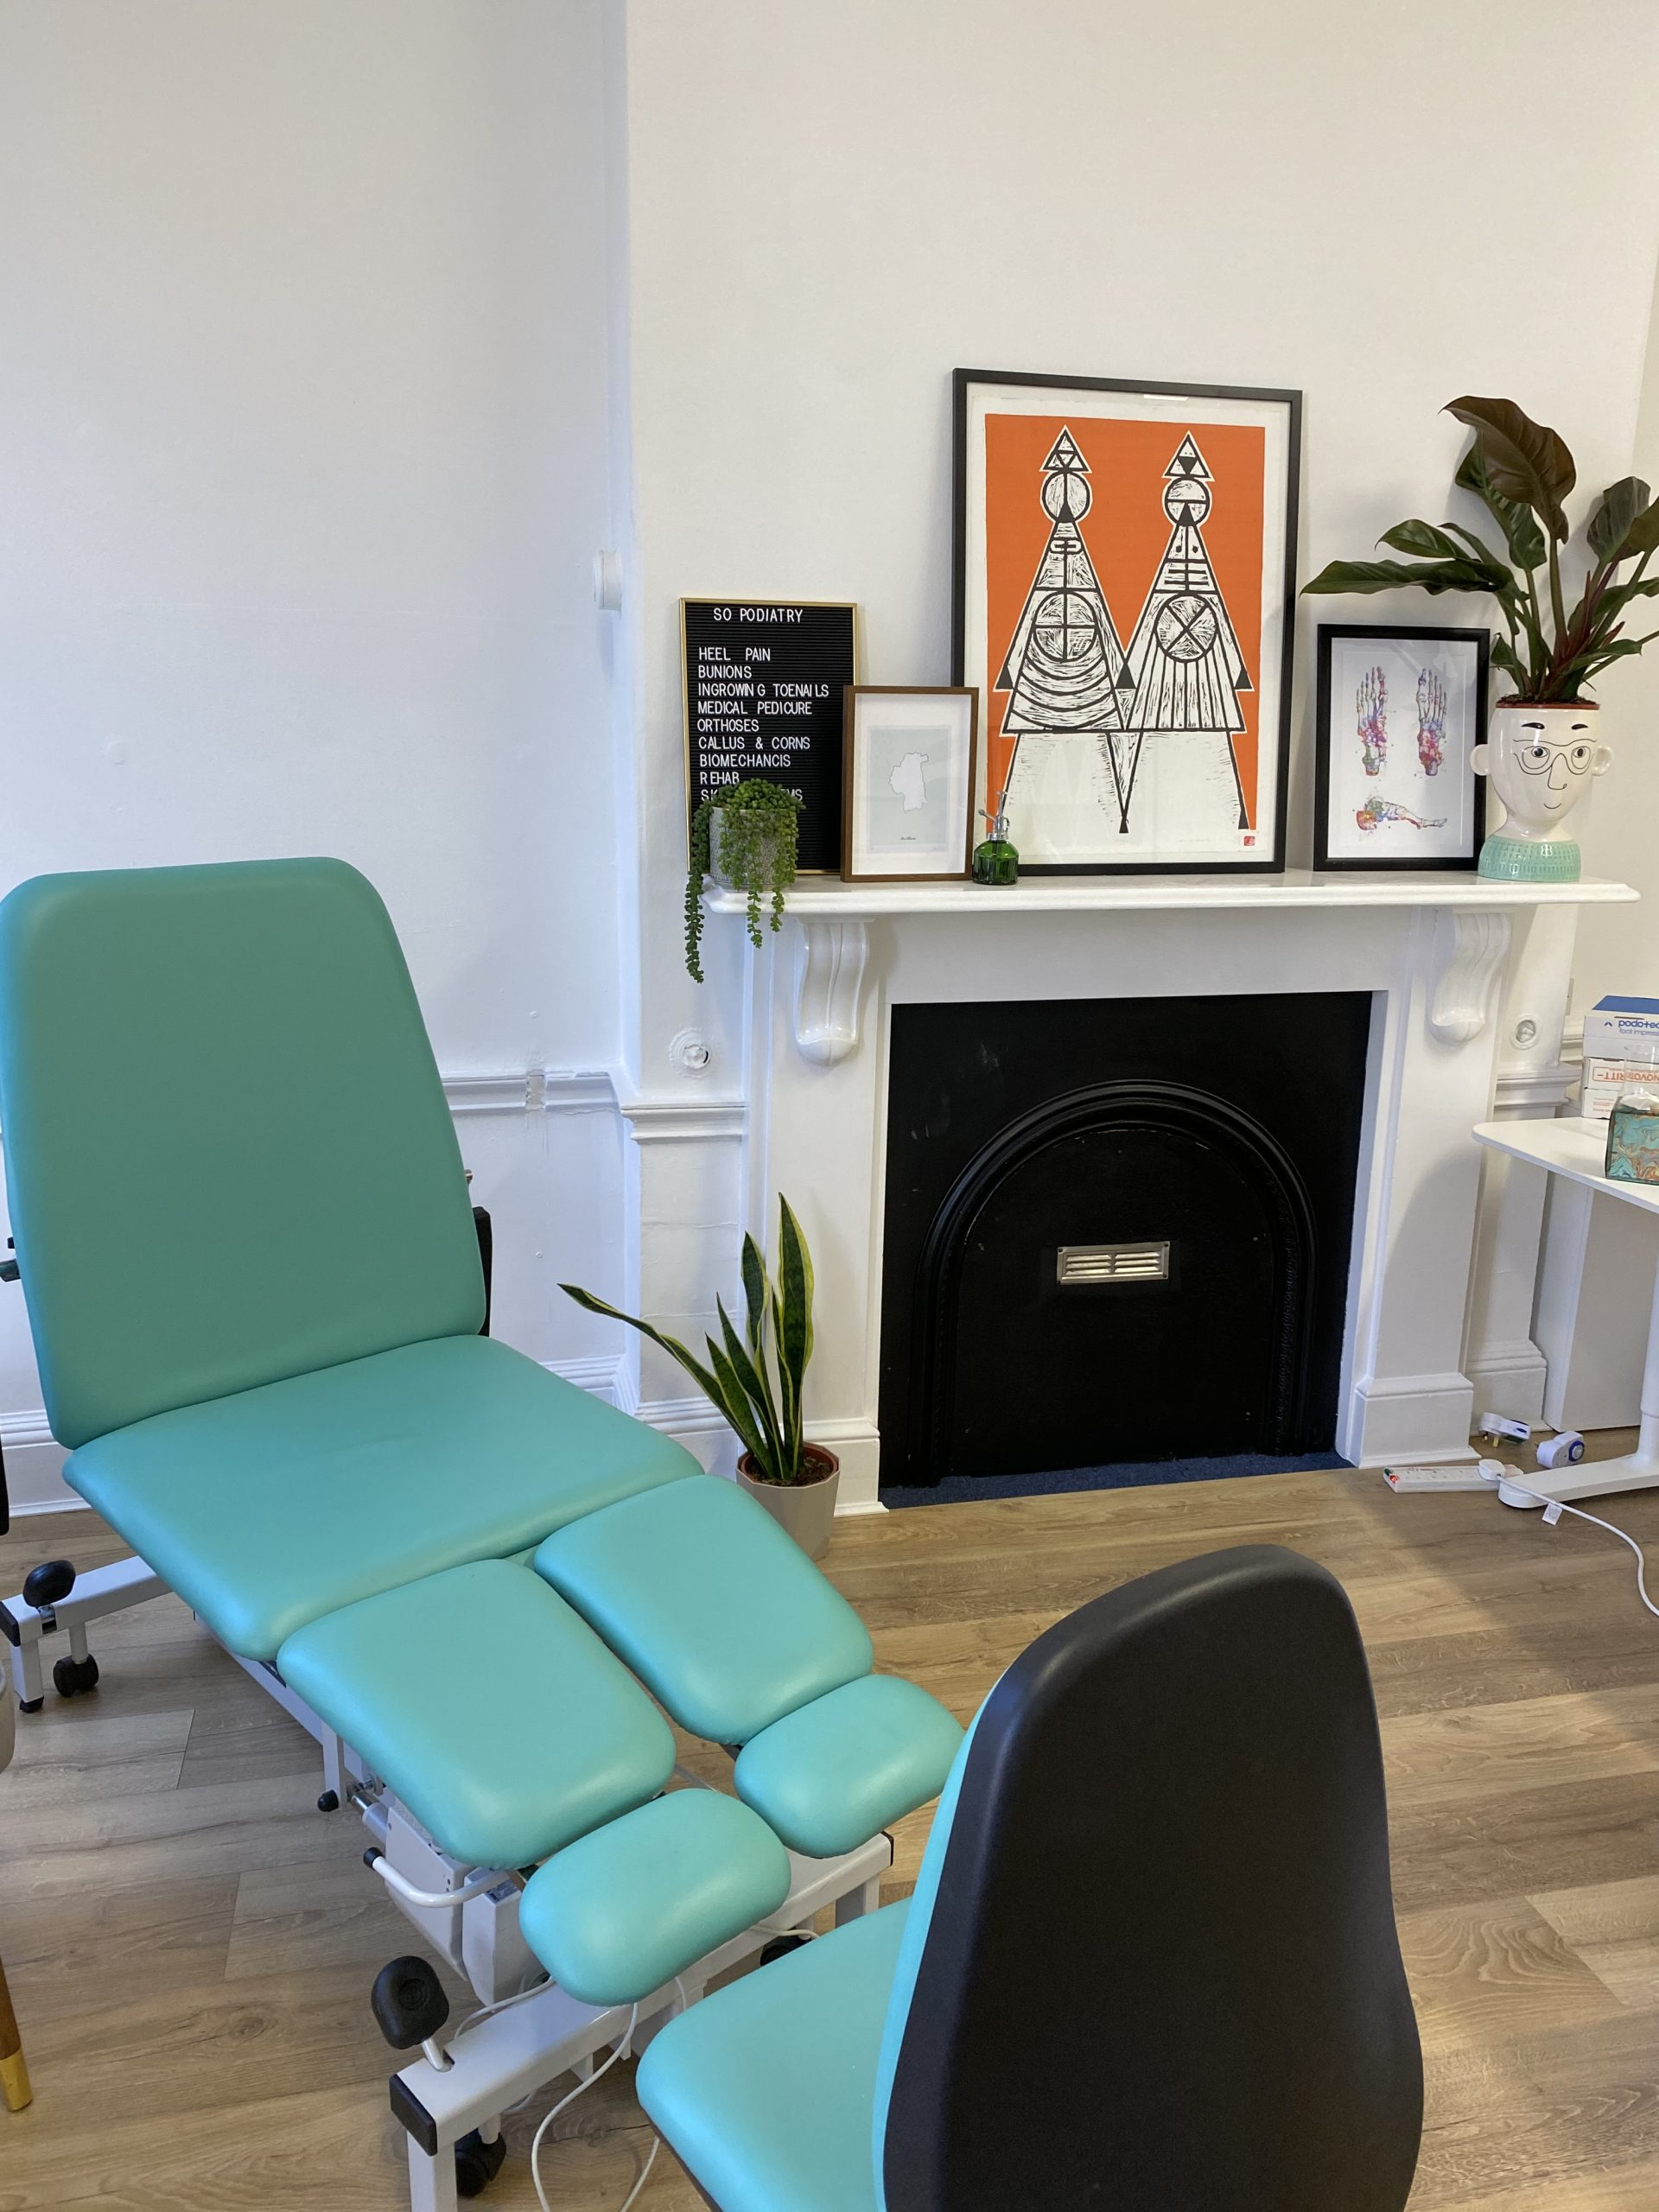 SO Podiatry Worcester Clinic